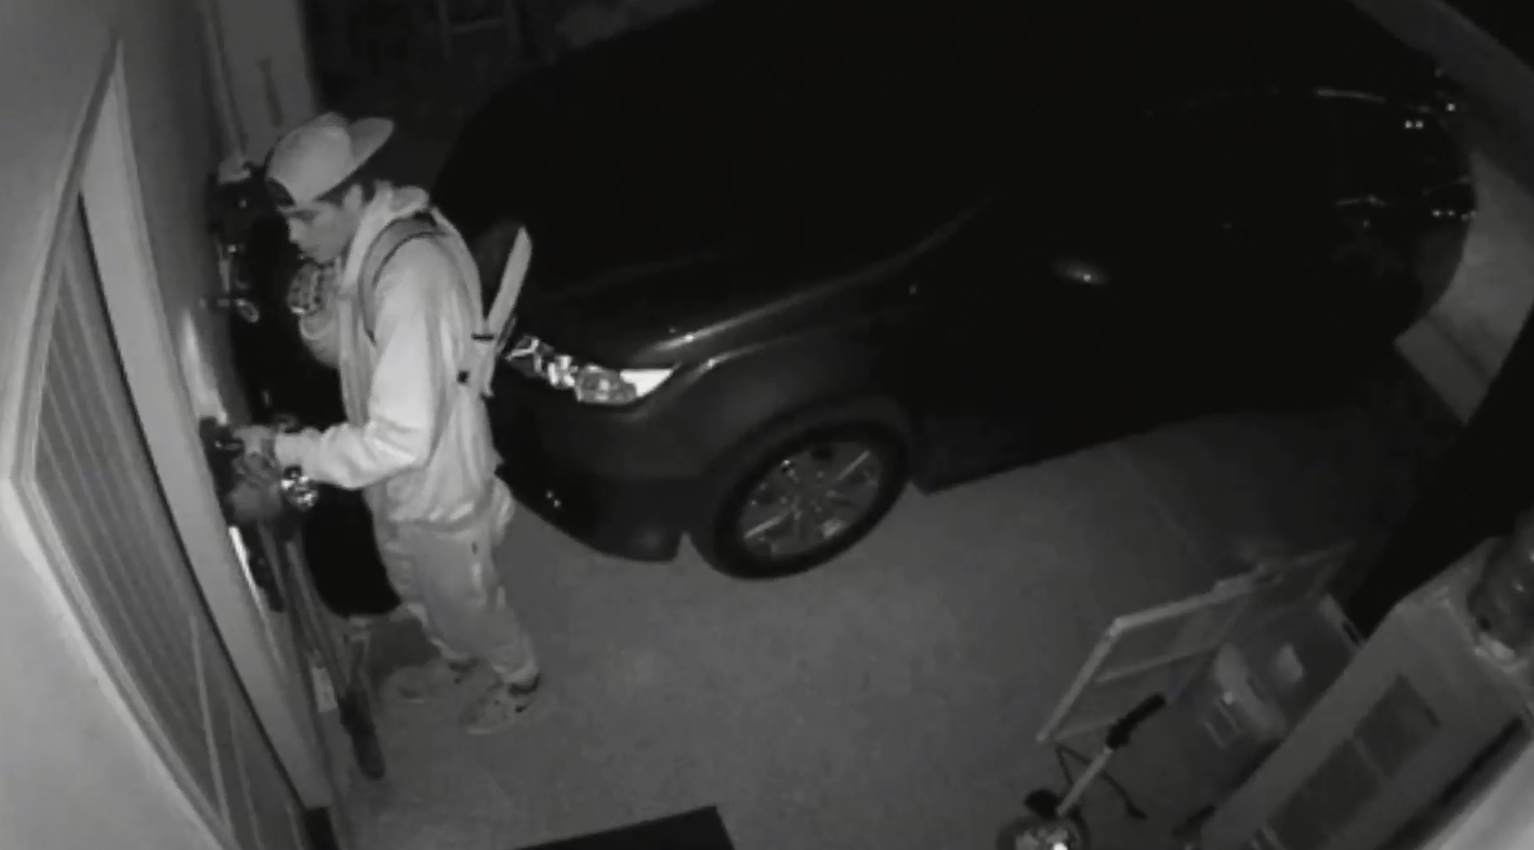 Crooks are getting clever in Summerlin by stealing garage door openers to try and get inside homes. Chilling home security video shows how one family was targeted while they were sleeping near Fox Hill and Alta. (Photo provided)